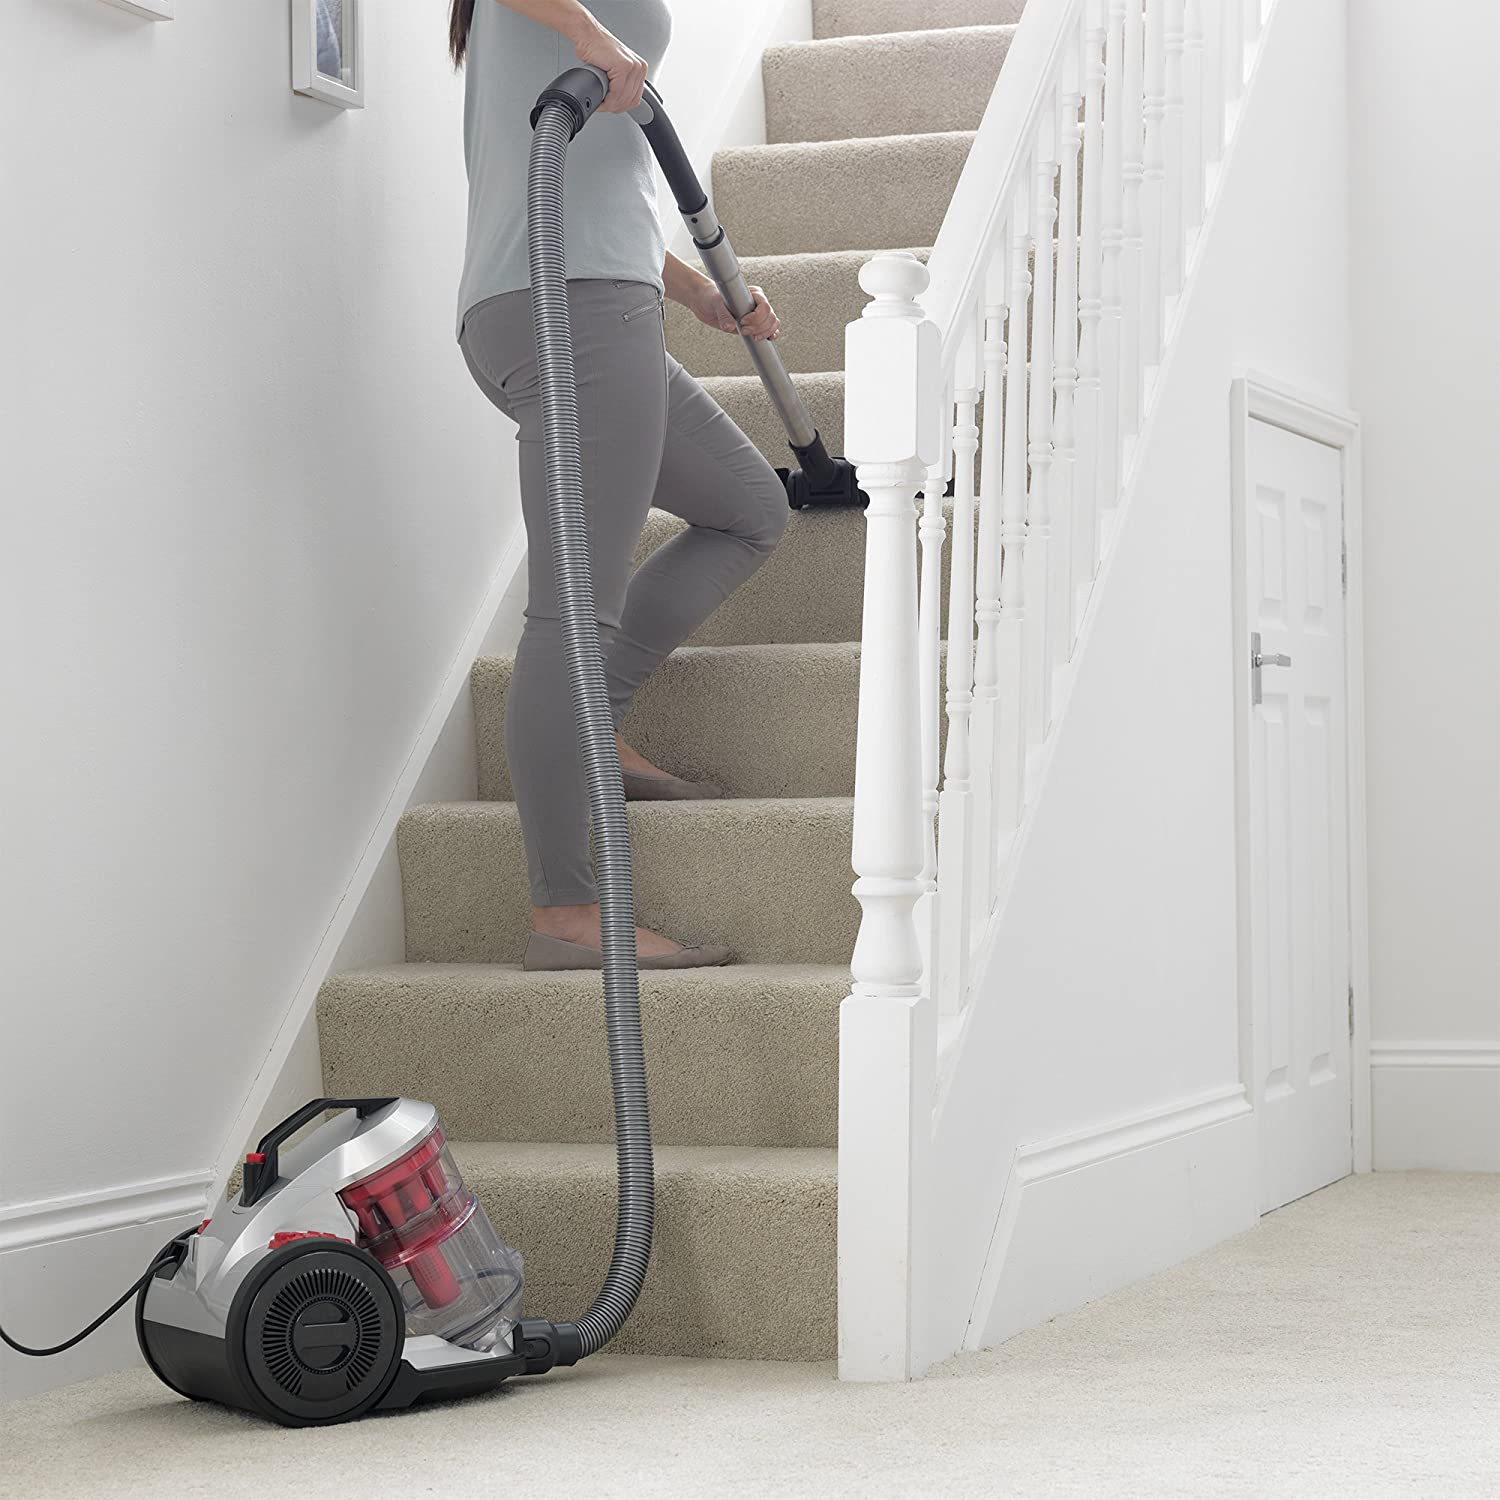 Vax Air Total Home Vacuum Cleaner, Red | CCQSAV1T1